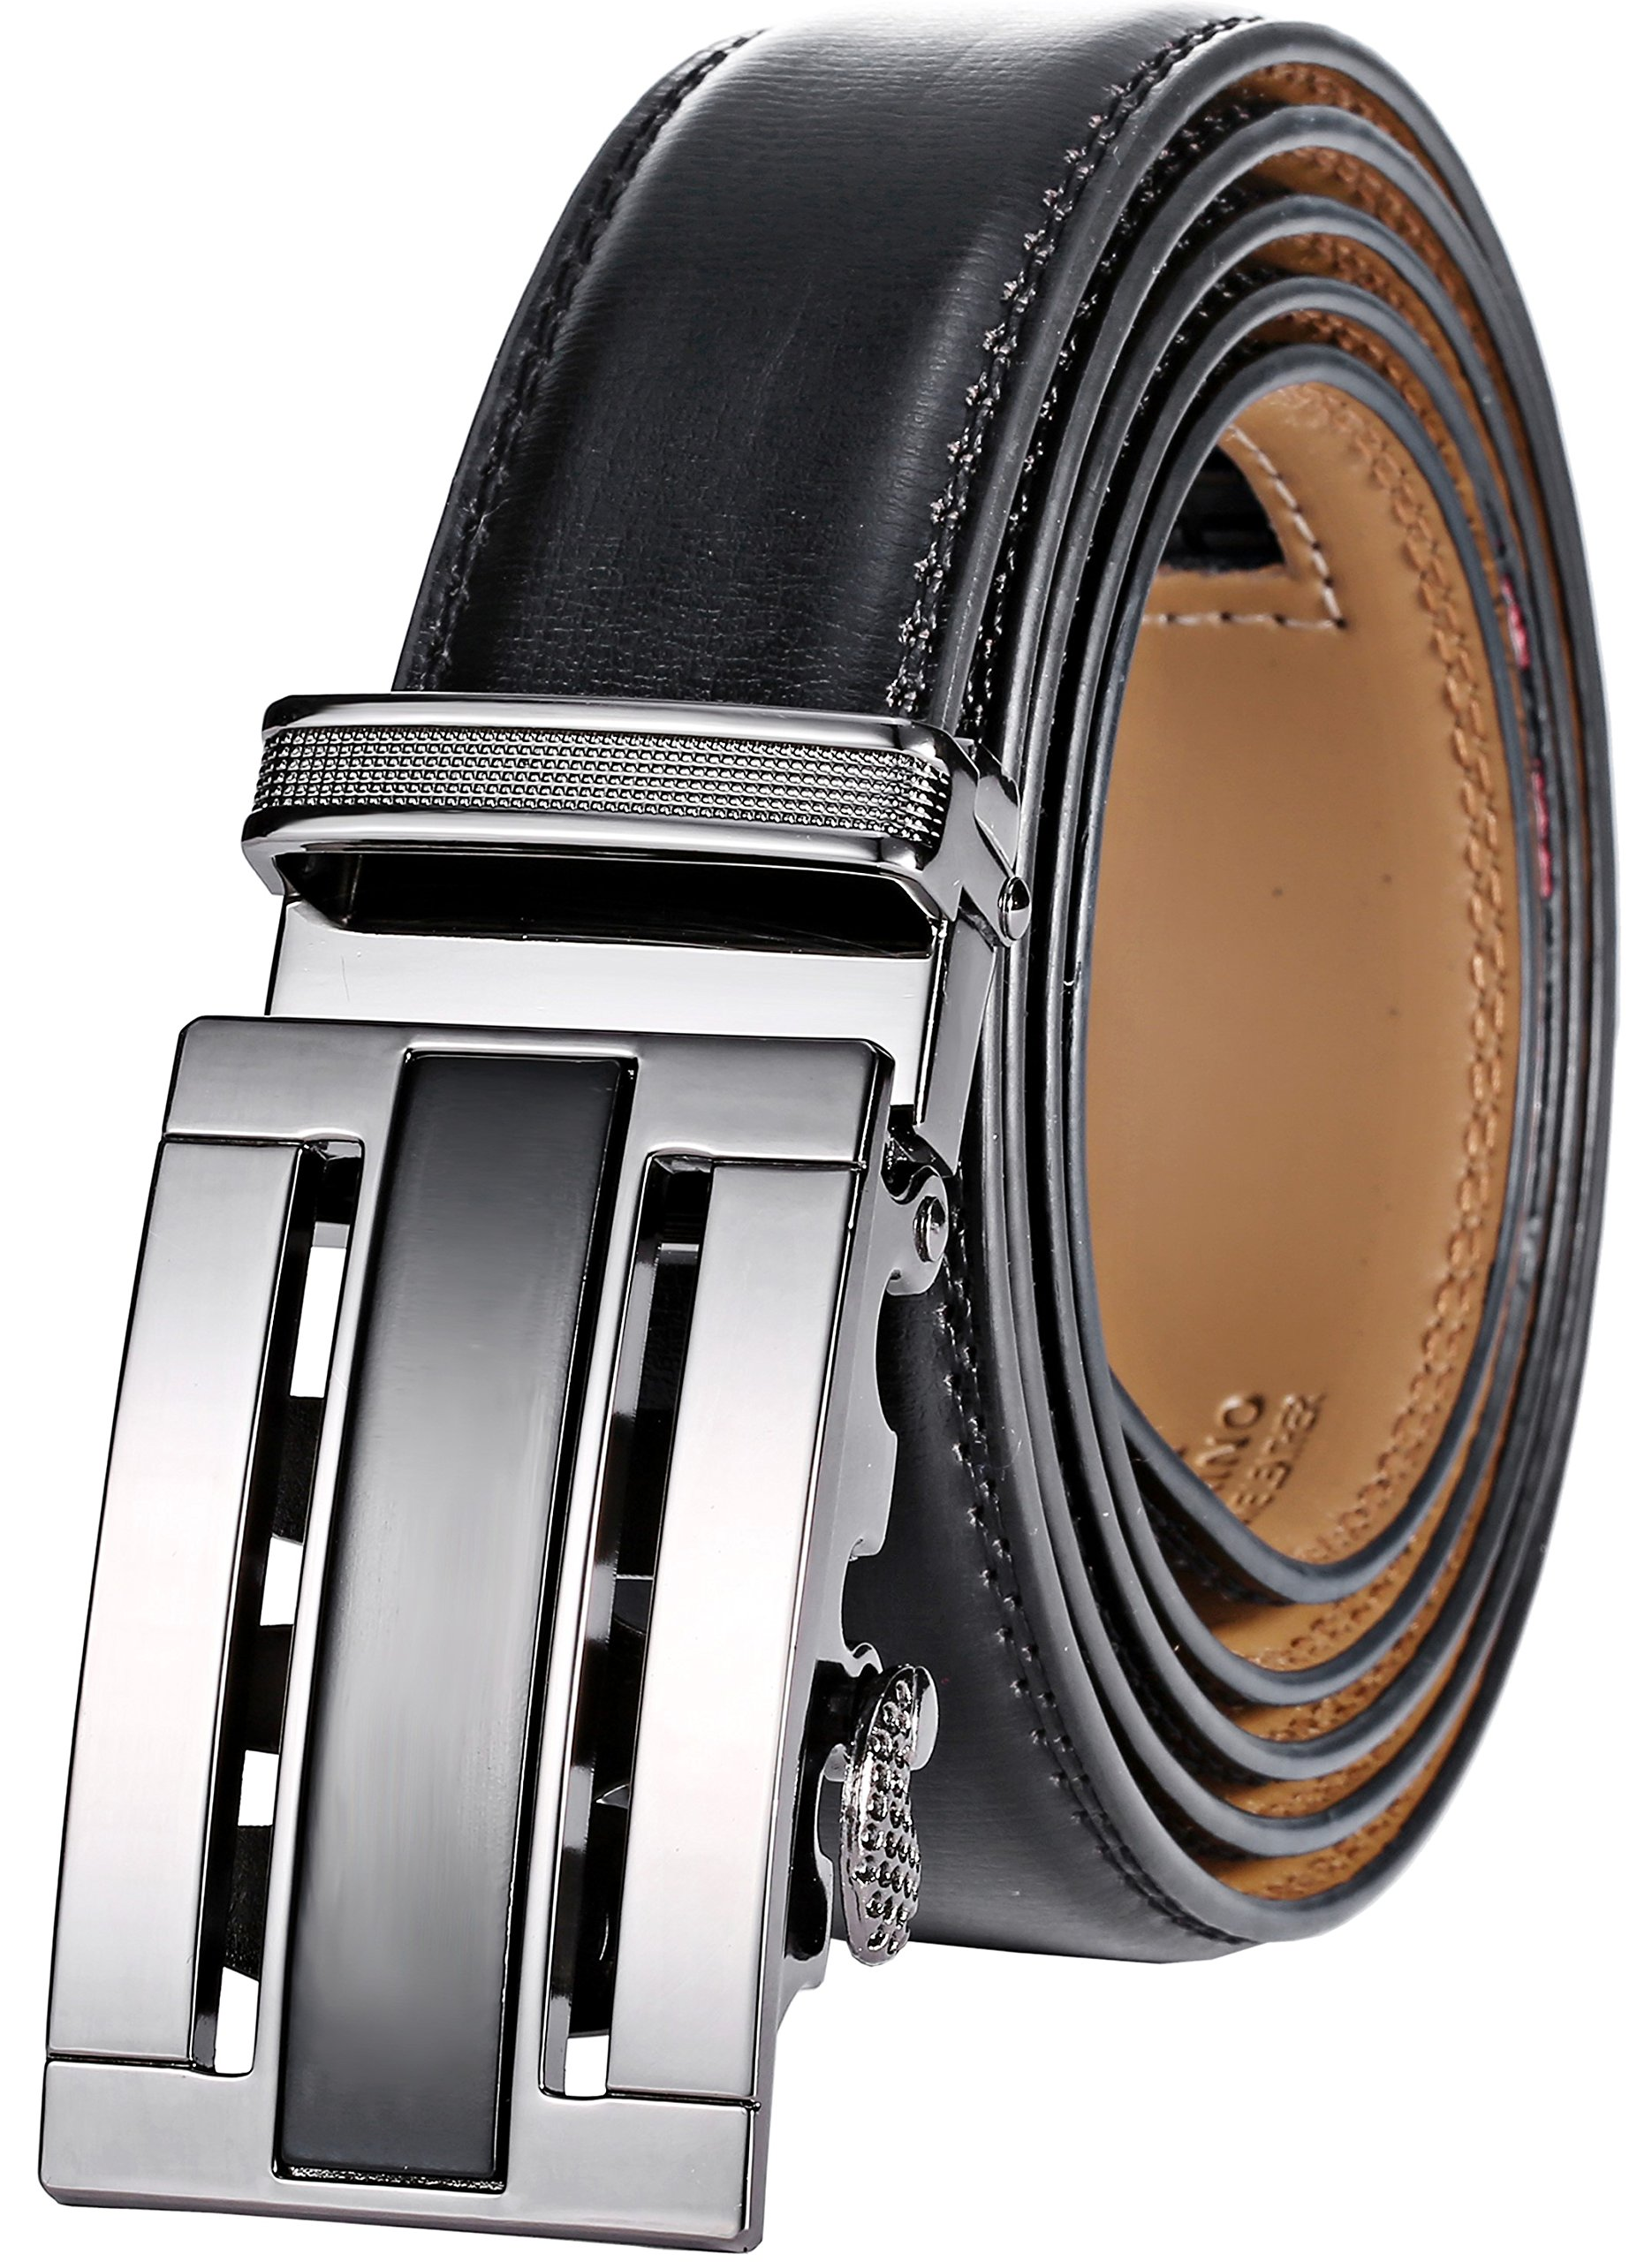 Marino Men's Genuine Leather Ratchet Dress Belt With Automatic Buckle, Enclosed in an Elegant Gift Box - Black and Silver - Adjustable from 28'' to 44'' Waist